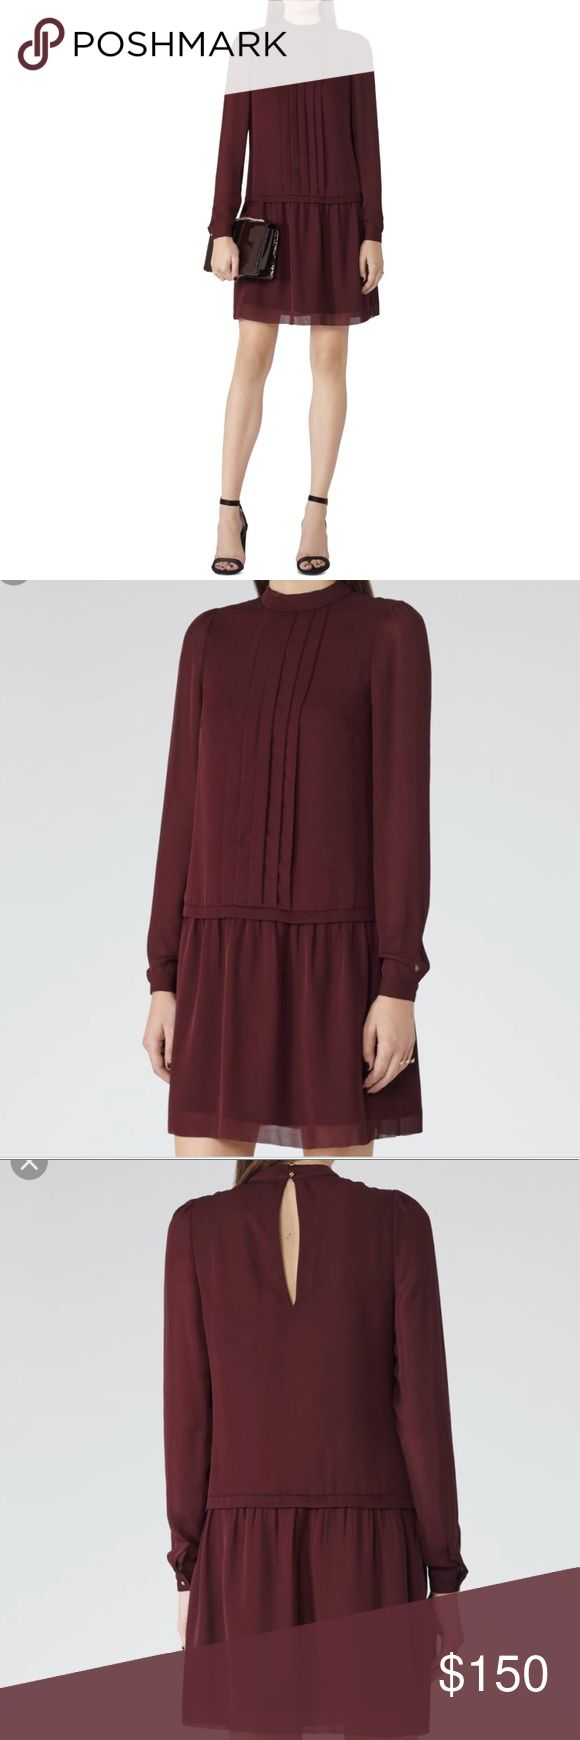 🆕 High-neck Shift Chiffon Dress - Dark Crimson NWT - US 4 (UK 8)  Cut from claret hued chiffon to an effortless loose fit, paired with gold button closure. Reiss Dresses Long Sleeve